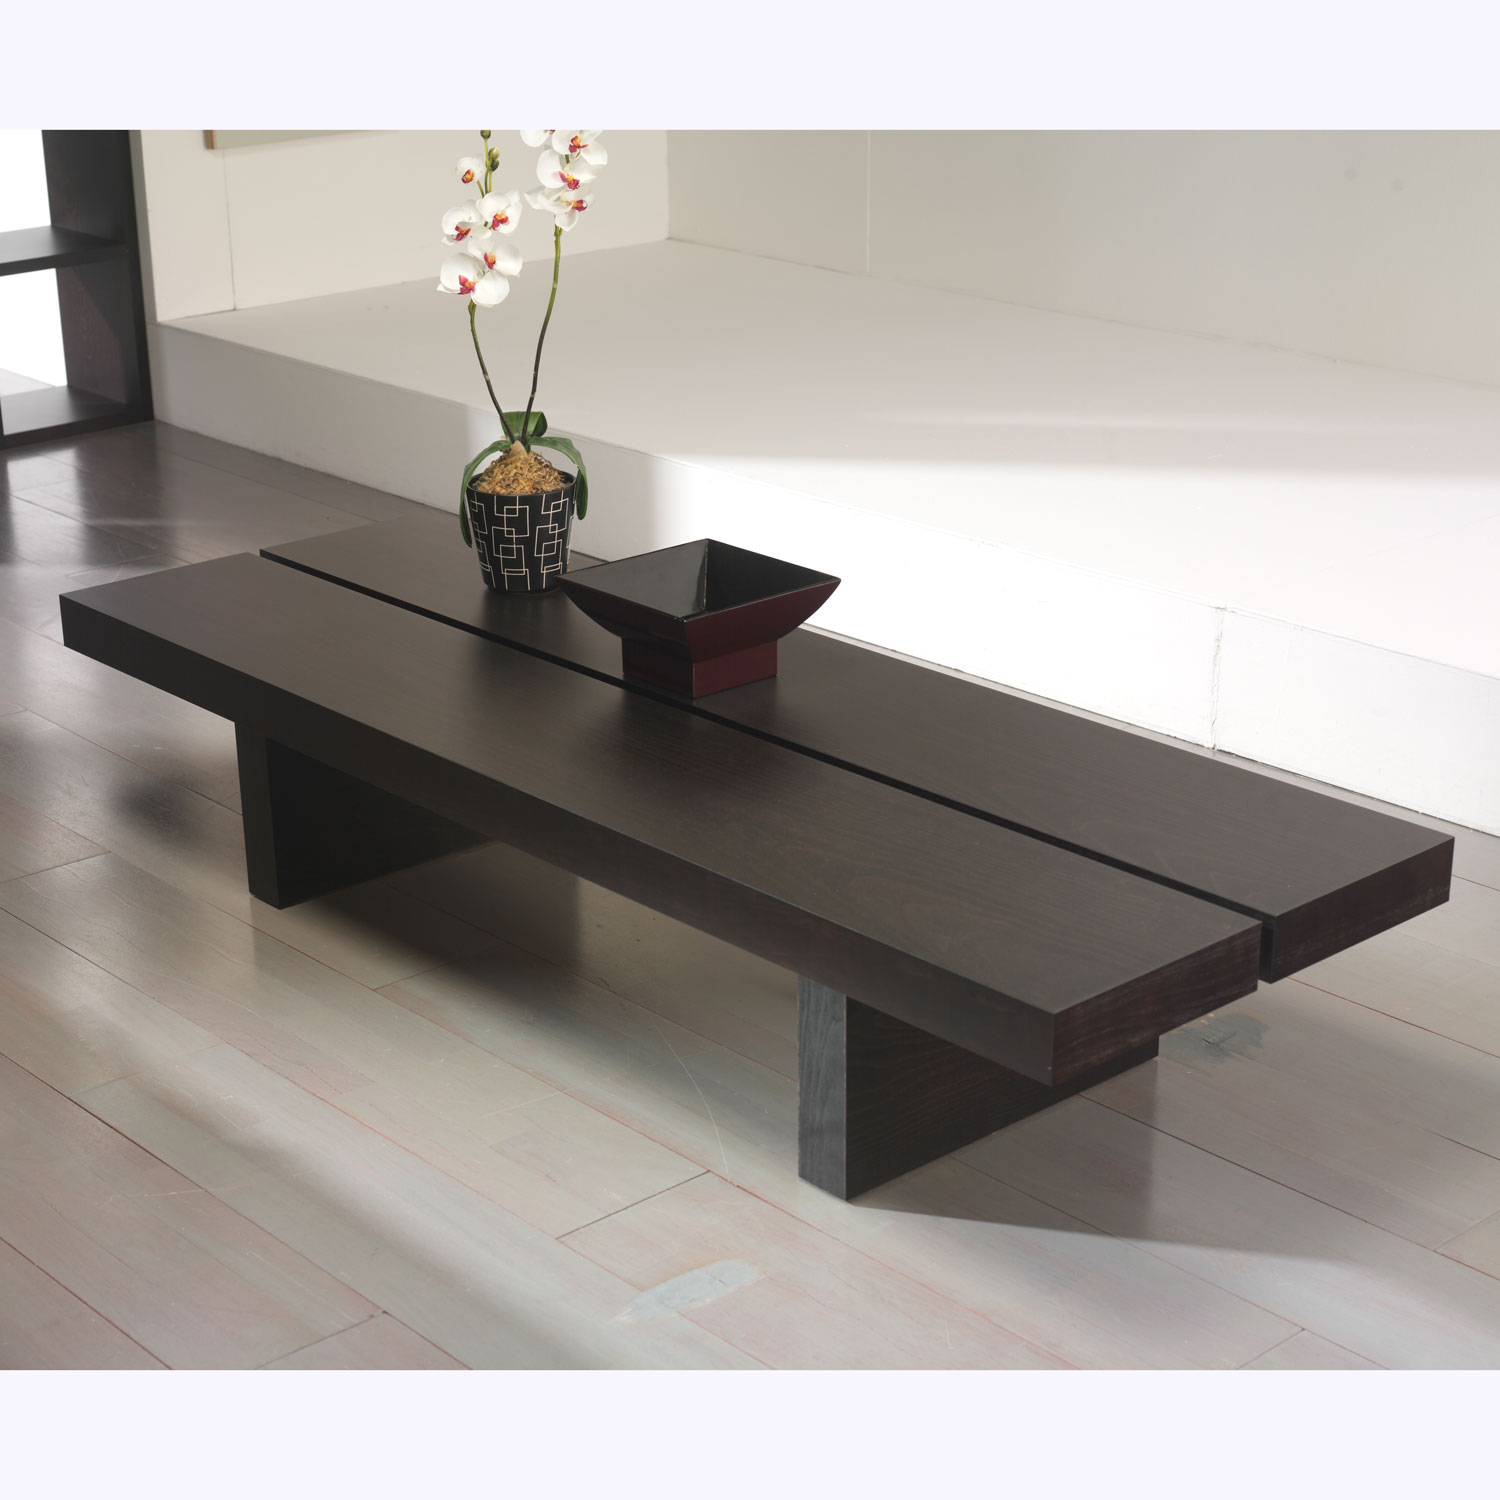 tokyo  low coffee table (white)  temahome living  touch of modern -